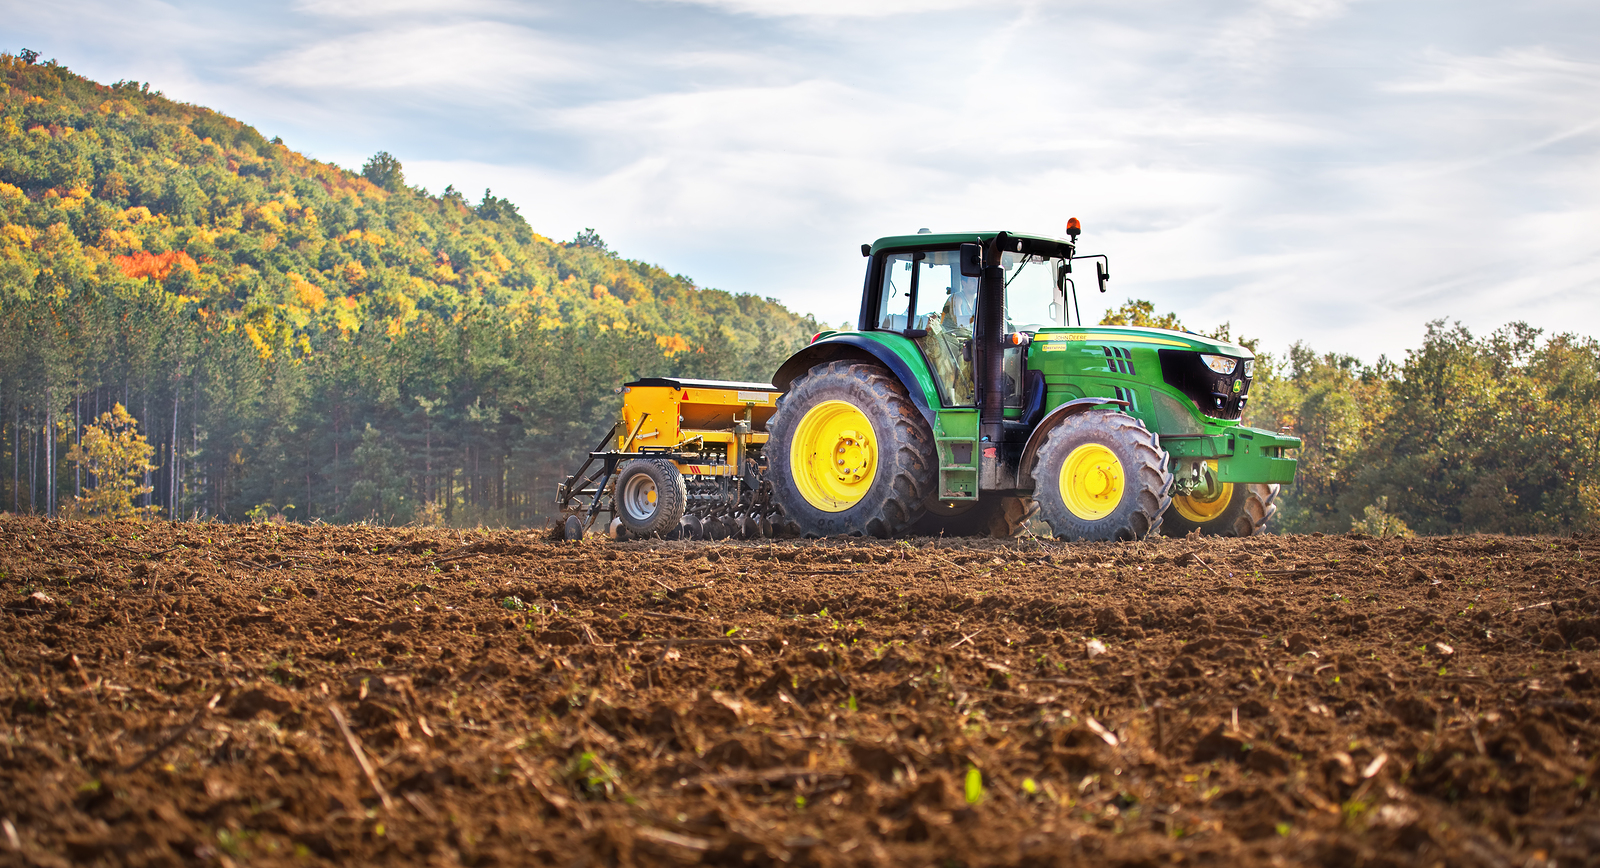 Rish Bulgaria - Octomber 26th 2015 Ploughing a field with John Deere 6930 tractor. John Deere 8100 was manufactured in 1995-1999 and it has JD 7.6L or 8.1L 6-cyl diesel engine.